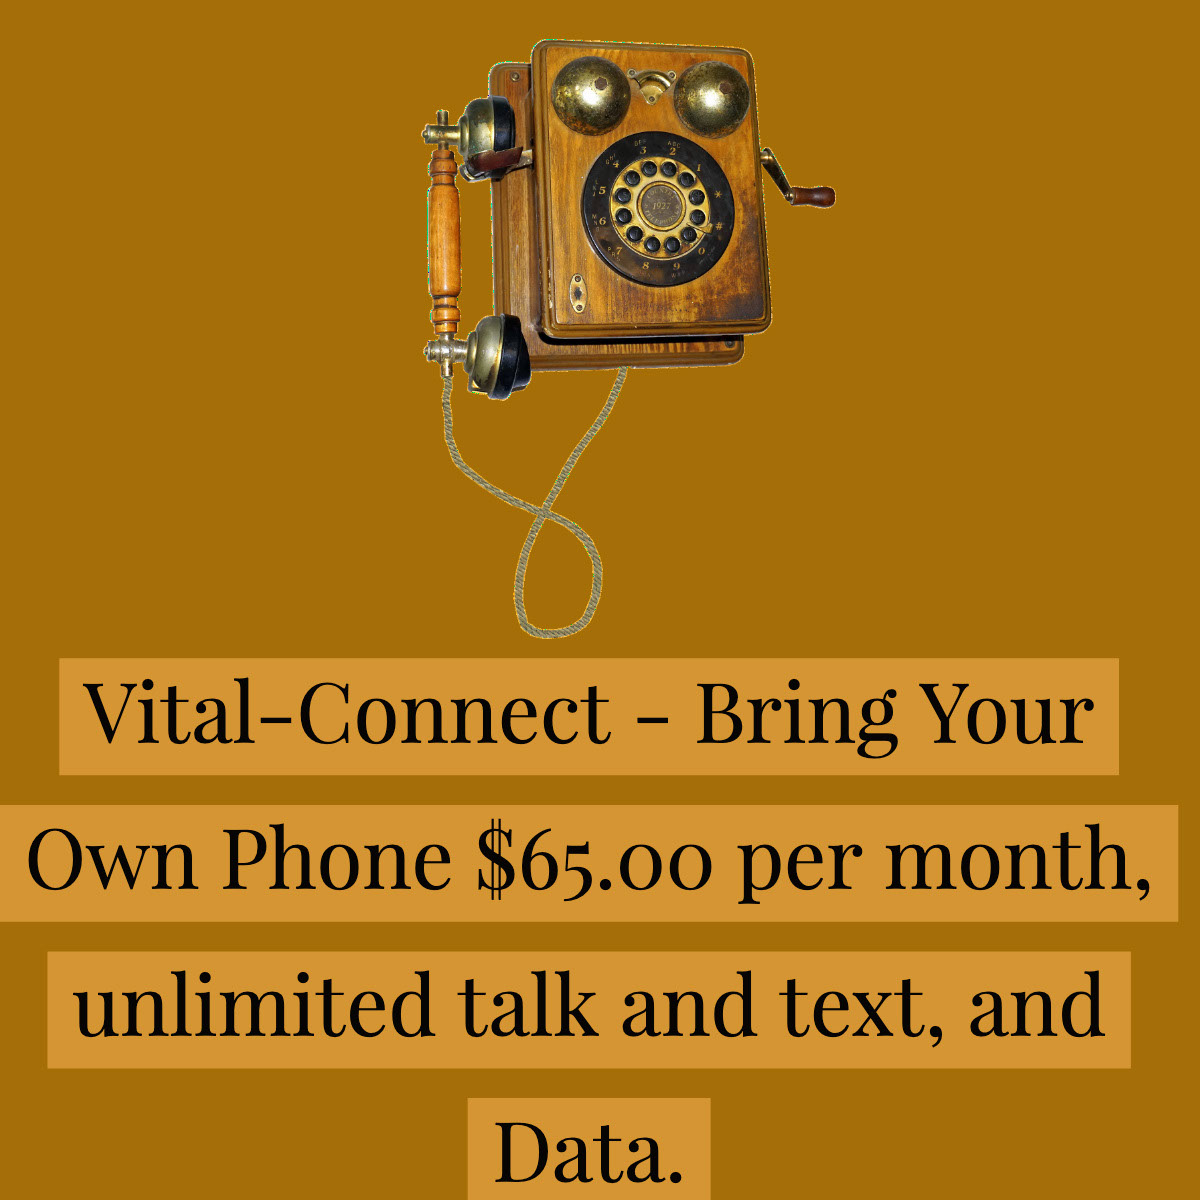 Vital-Connect - Bring Your Own Phone $65.00 per month, unlimited talk and text, and Data.  Vital-Connect - Bring Your Own Phone $65.00 per month, unlimited talk and text, and Data.